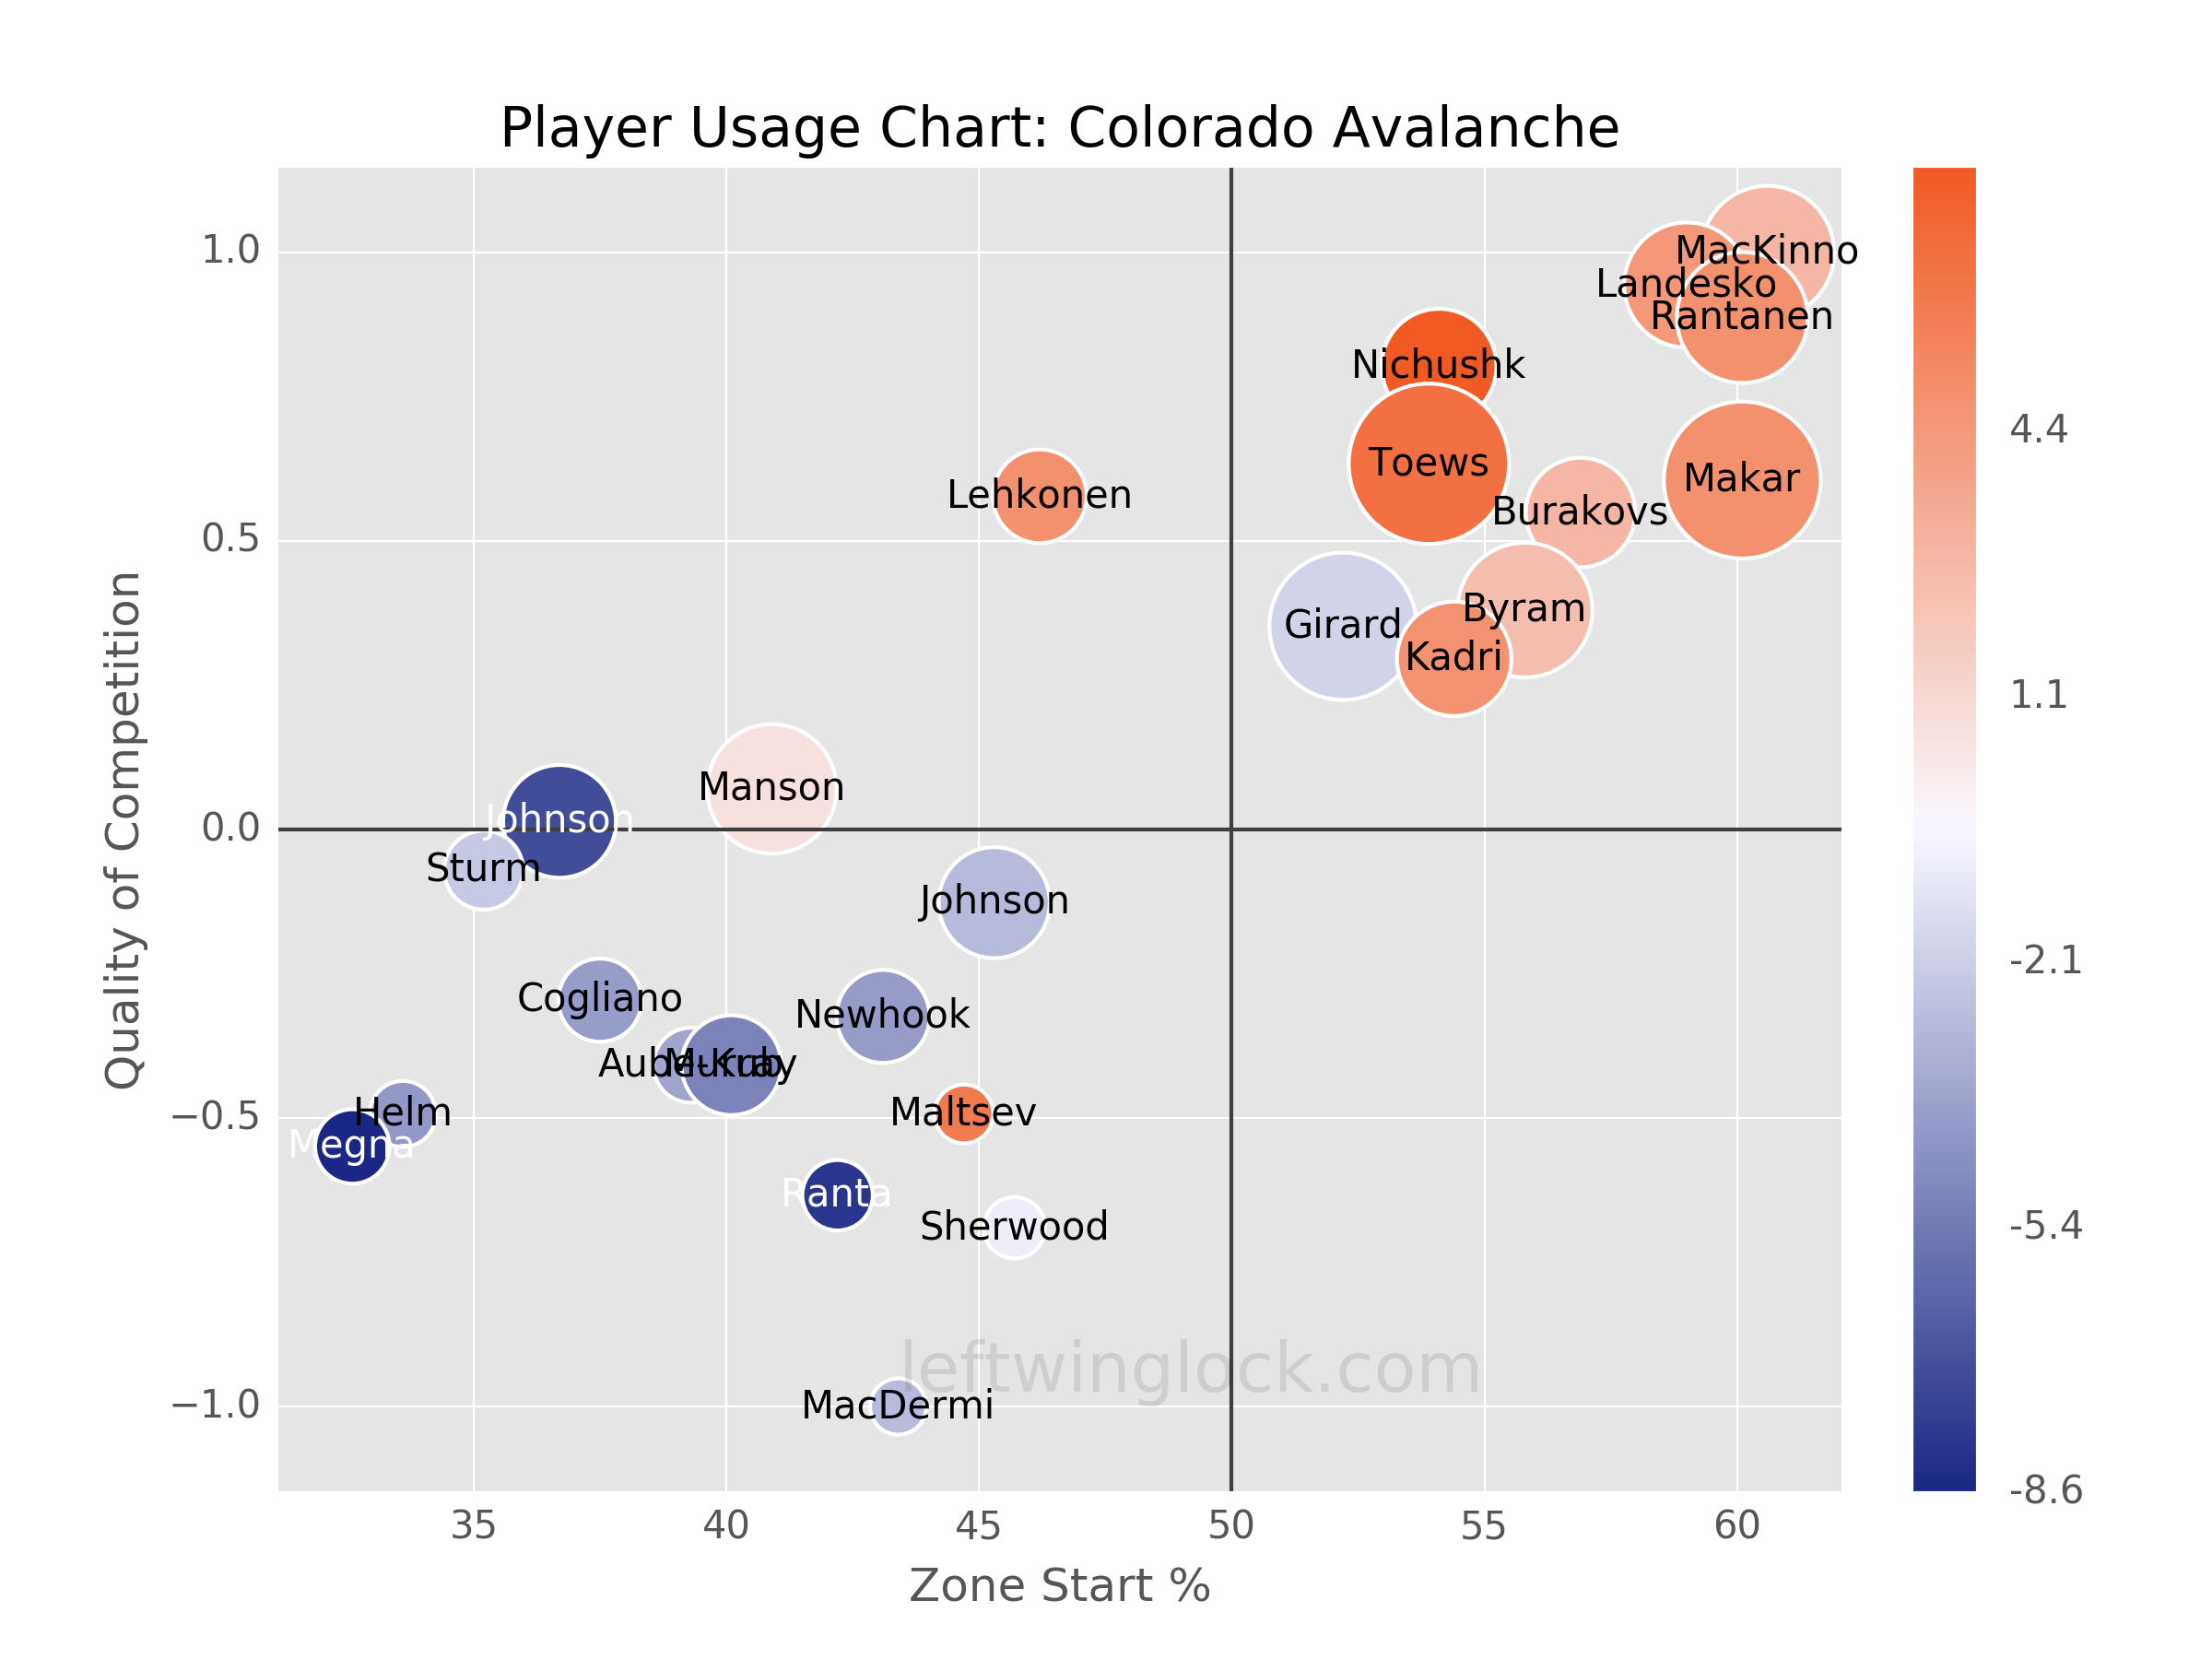 Colorado Avalanche Player Usage Chart